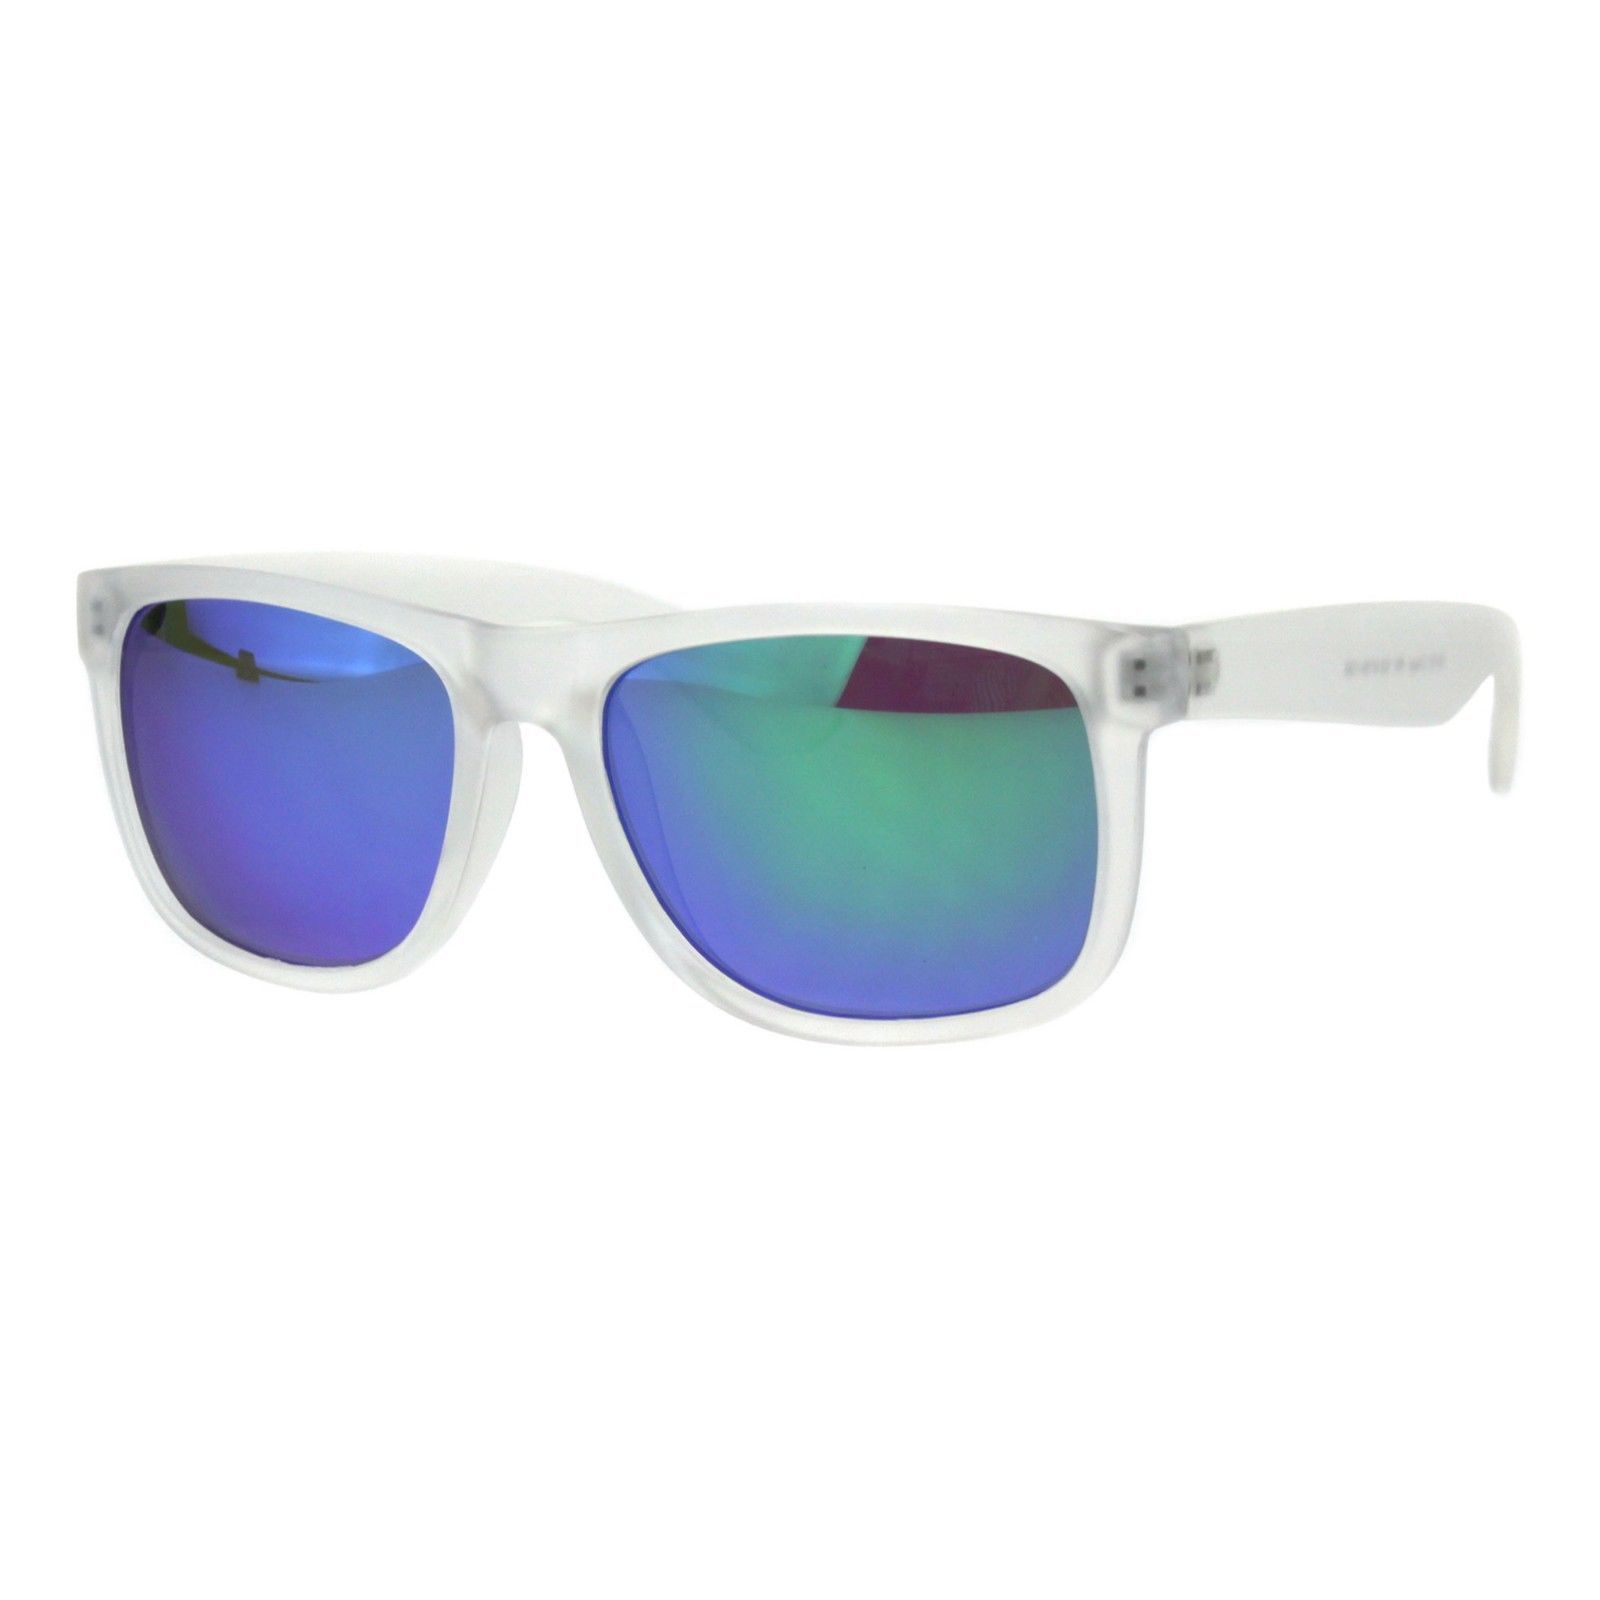 Unisex Summer Sunglasses Square Clear/Frost Frame Mirrored Lens UV 400